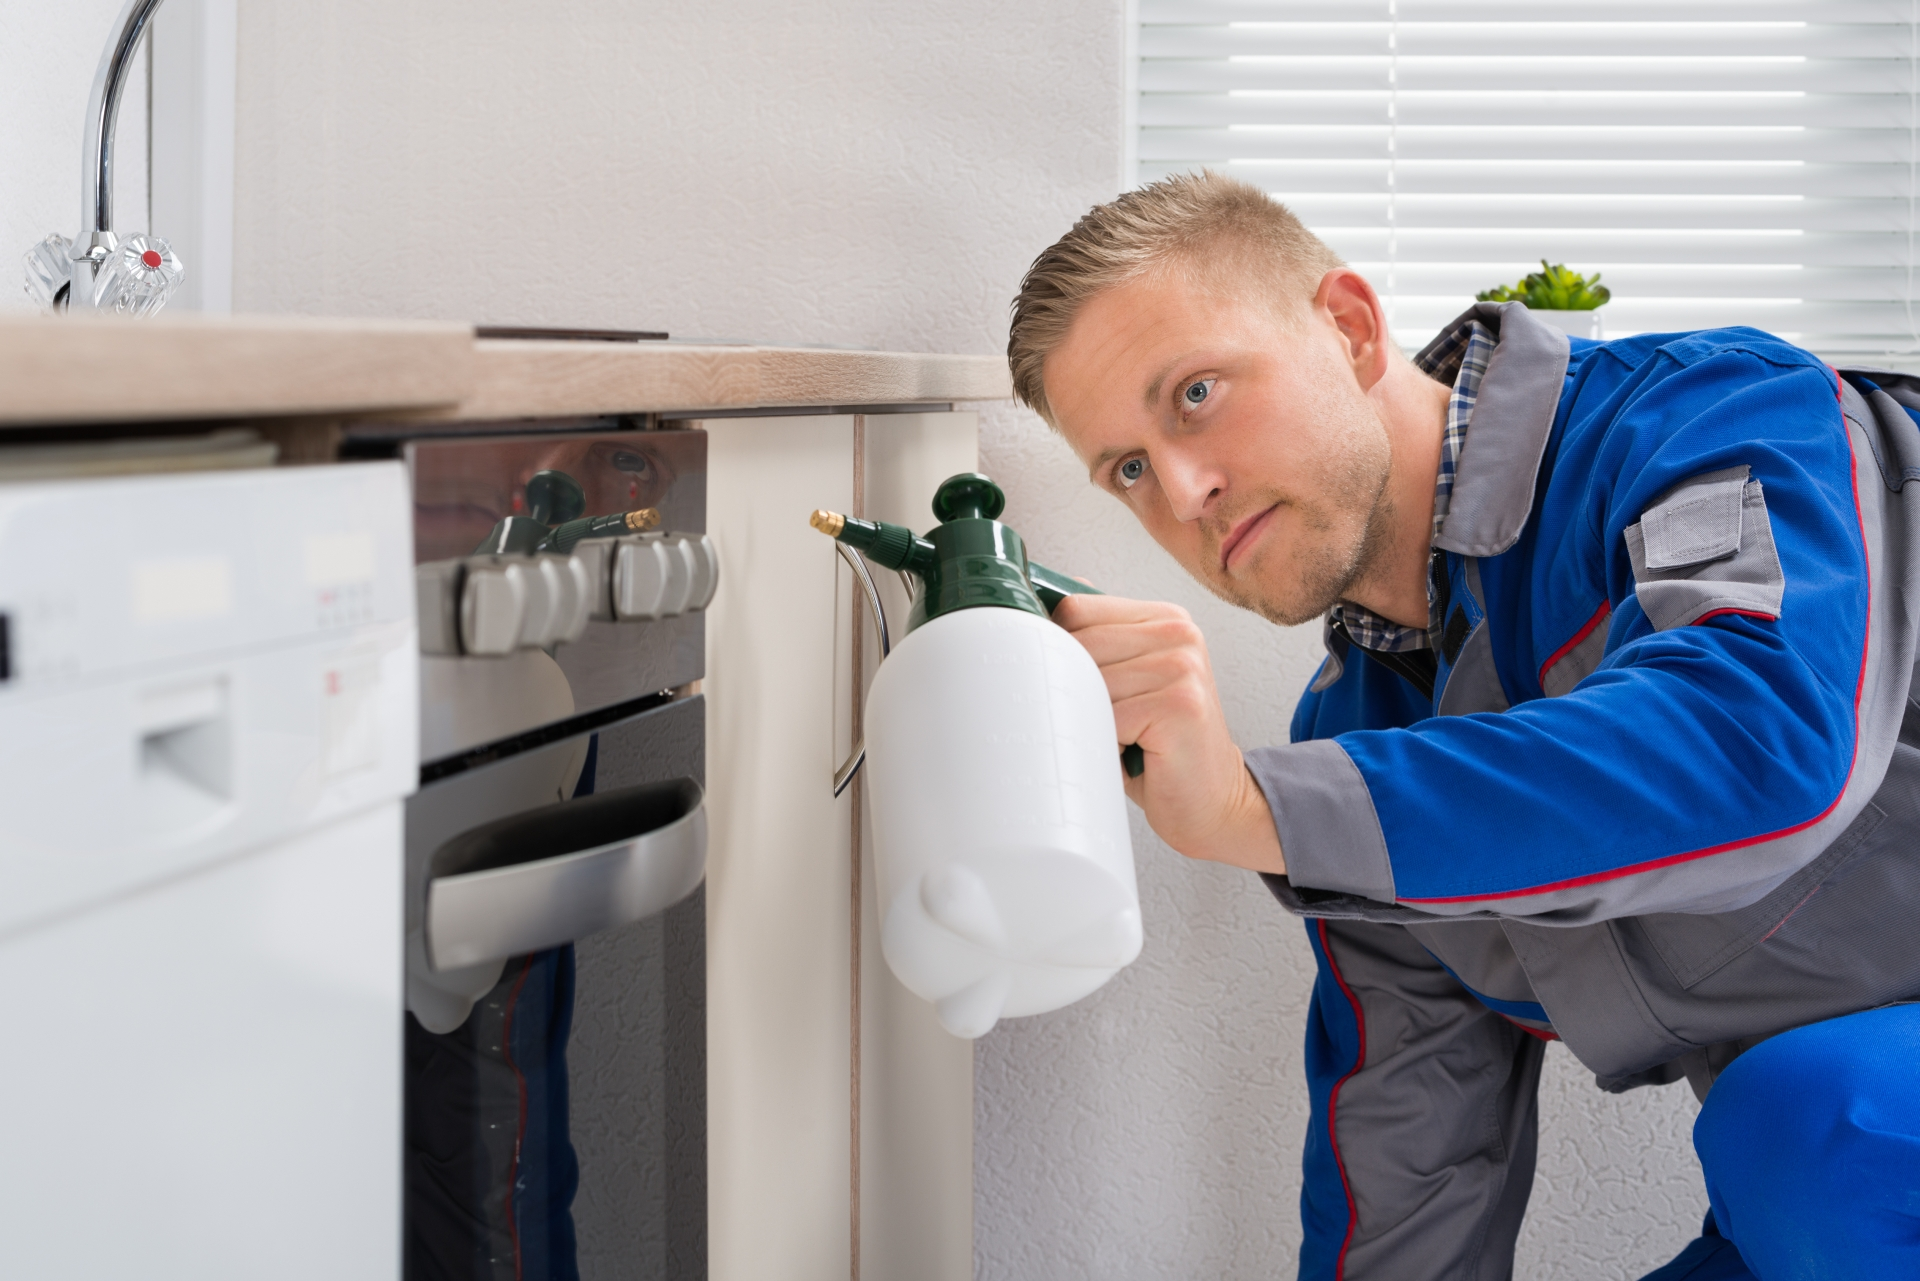 Pest Inspection, Pest Control in Barking, Creekmouth, IG11. Call Now 020 8166 9746